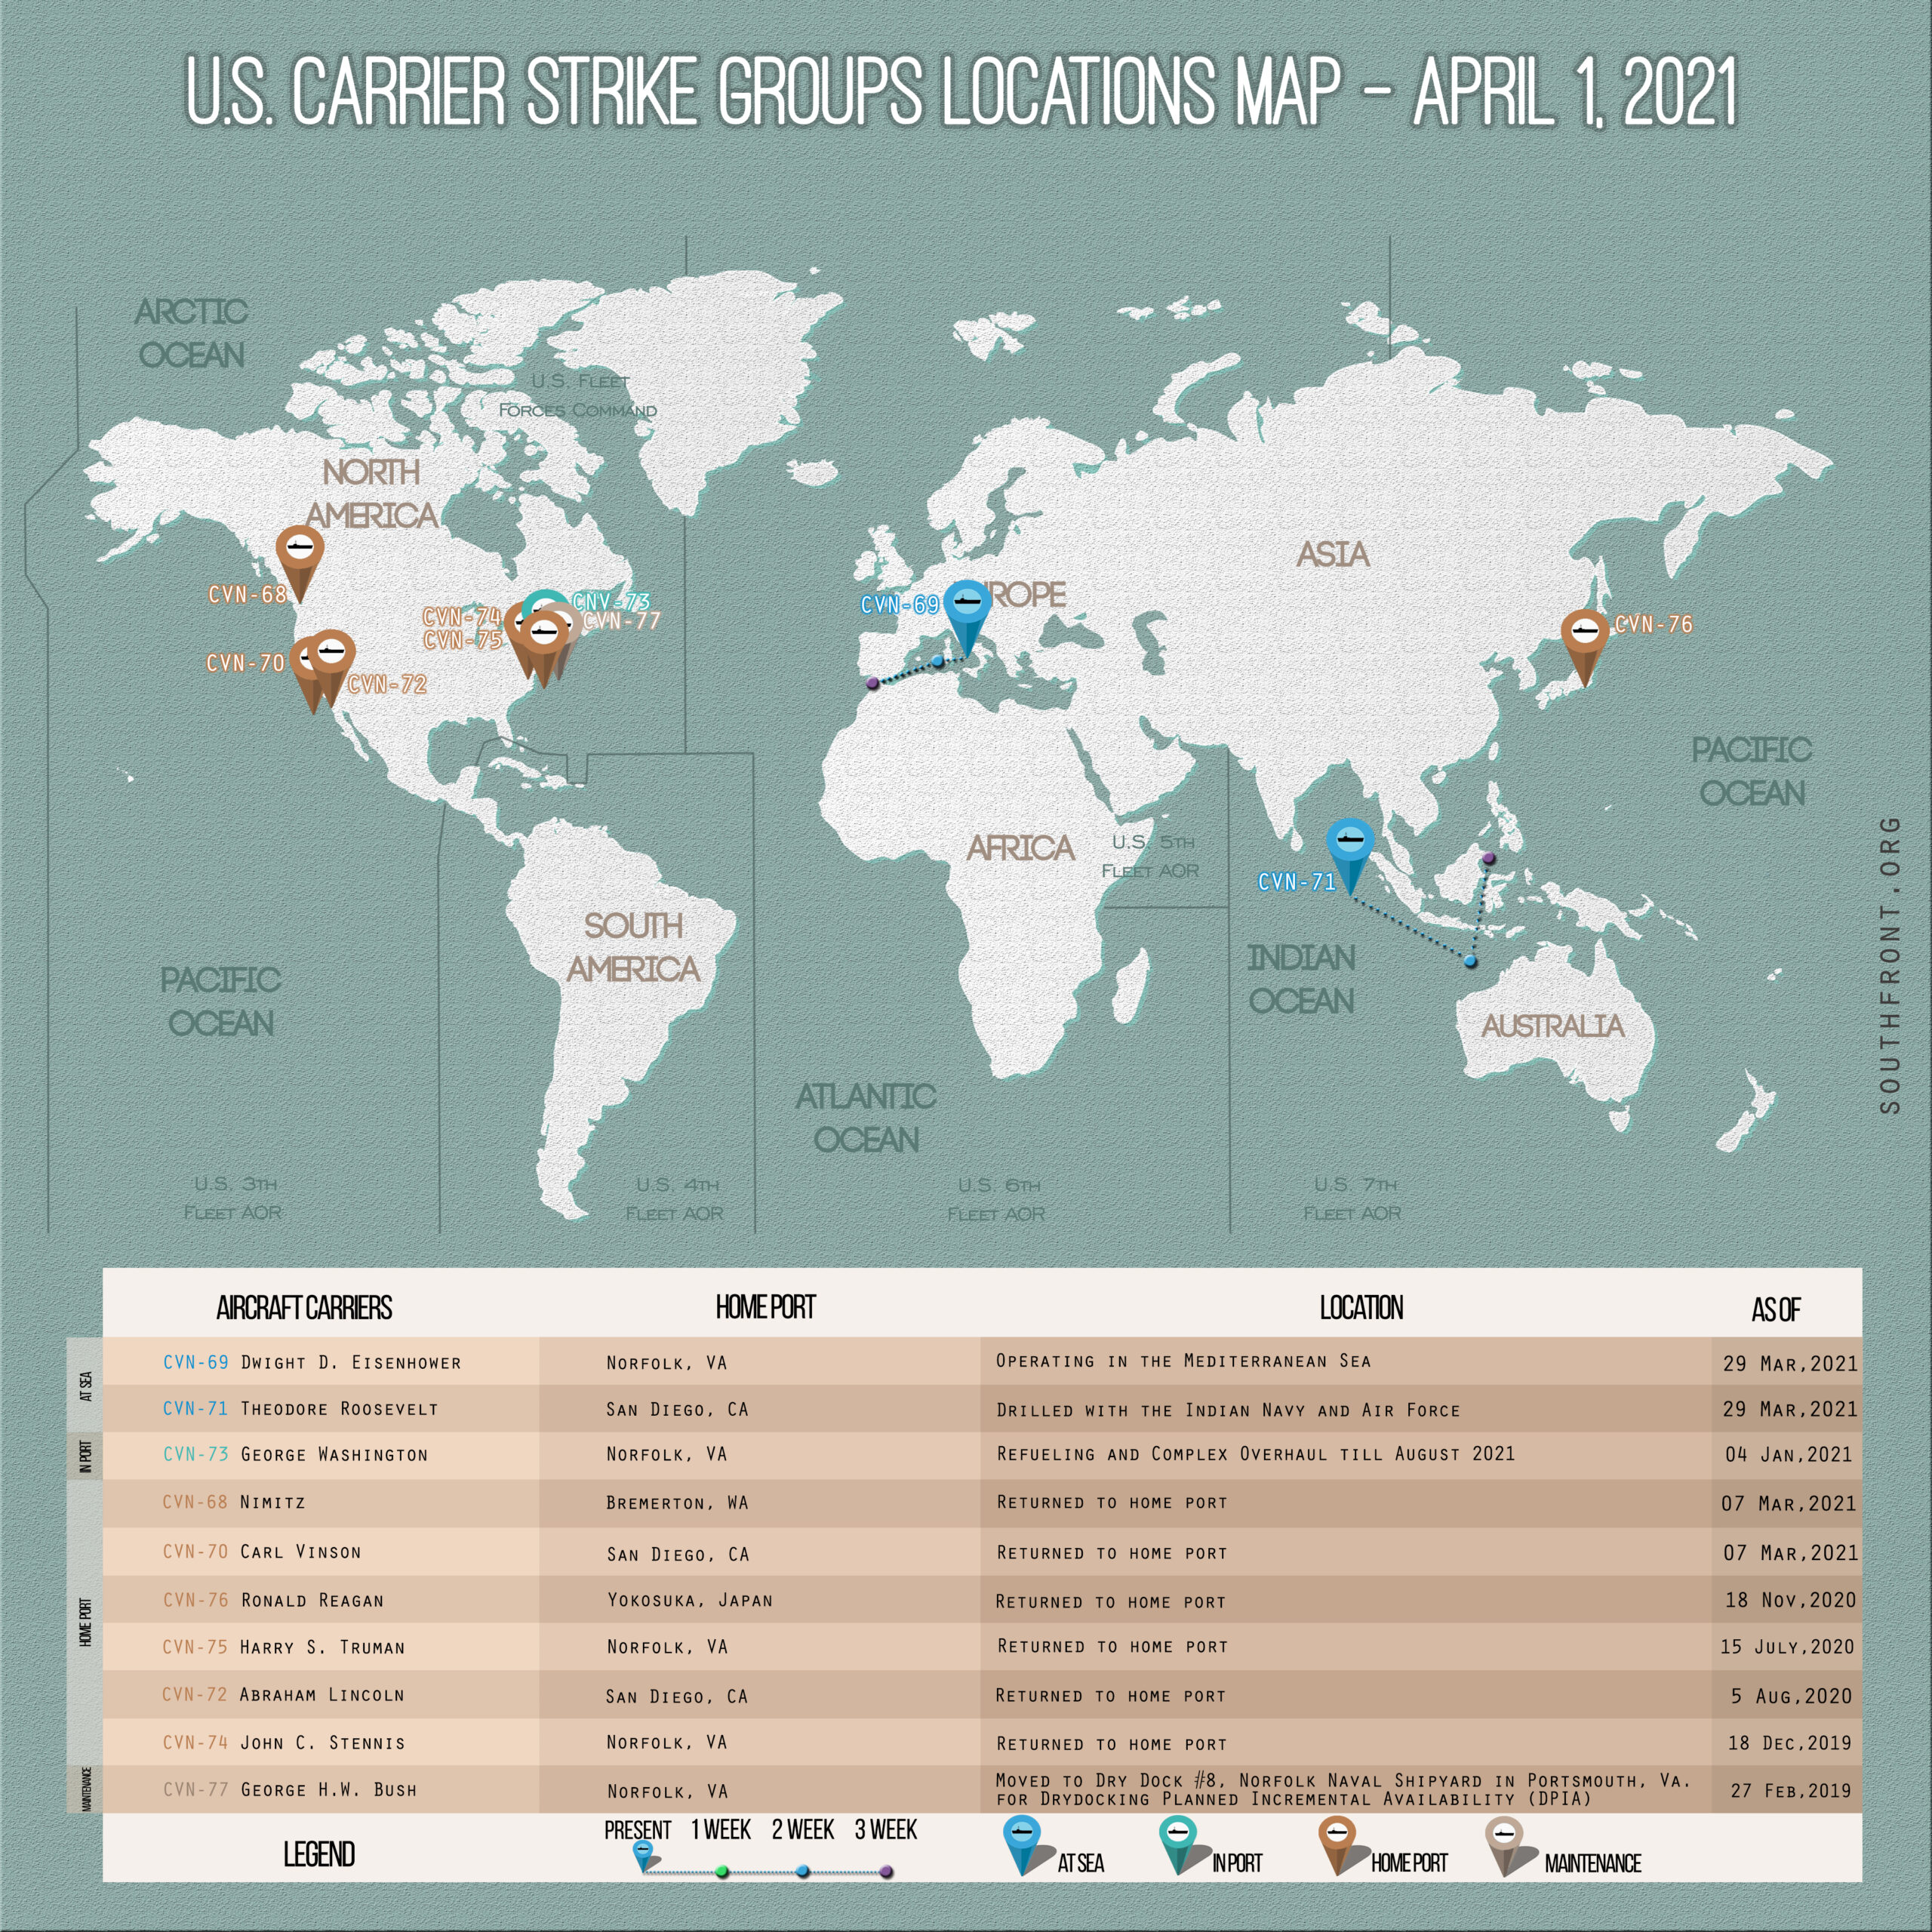 Locations Of US Carrier Strike Groups – April 1, 2021